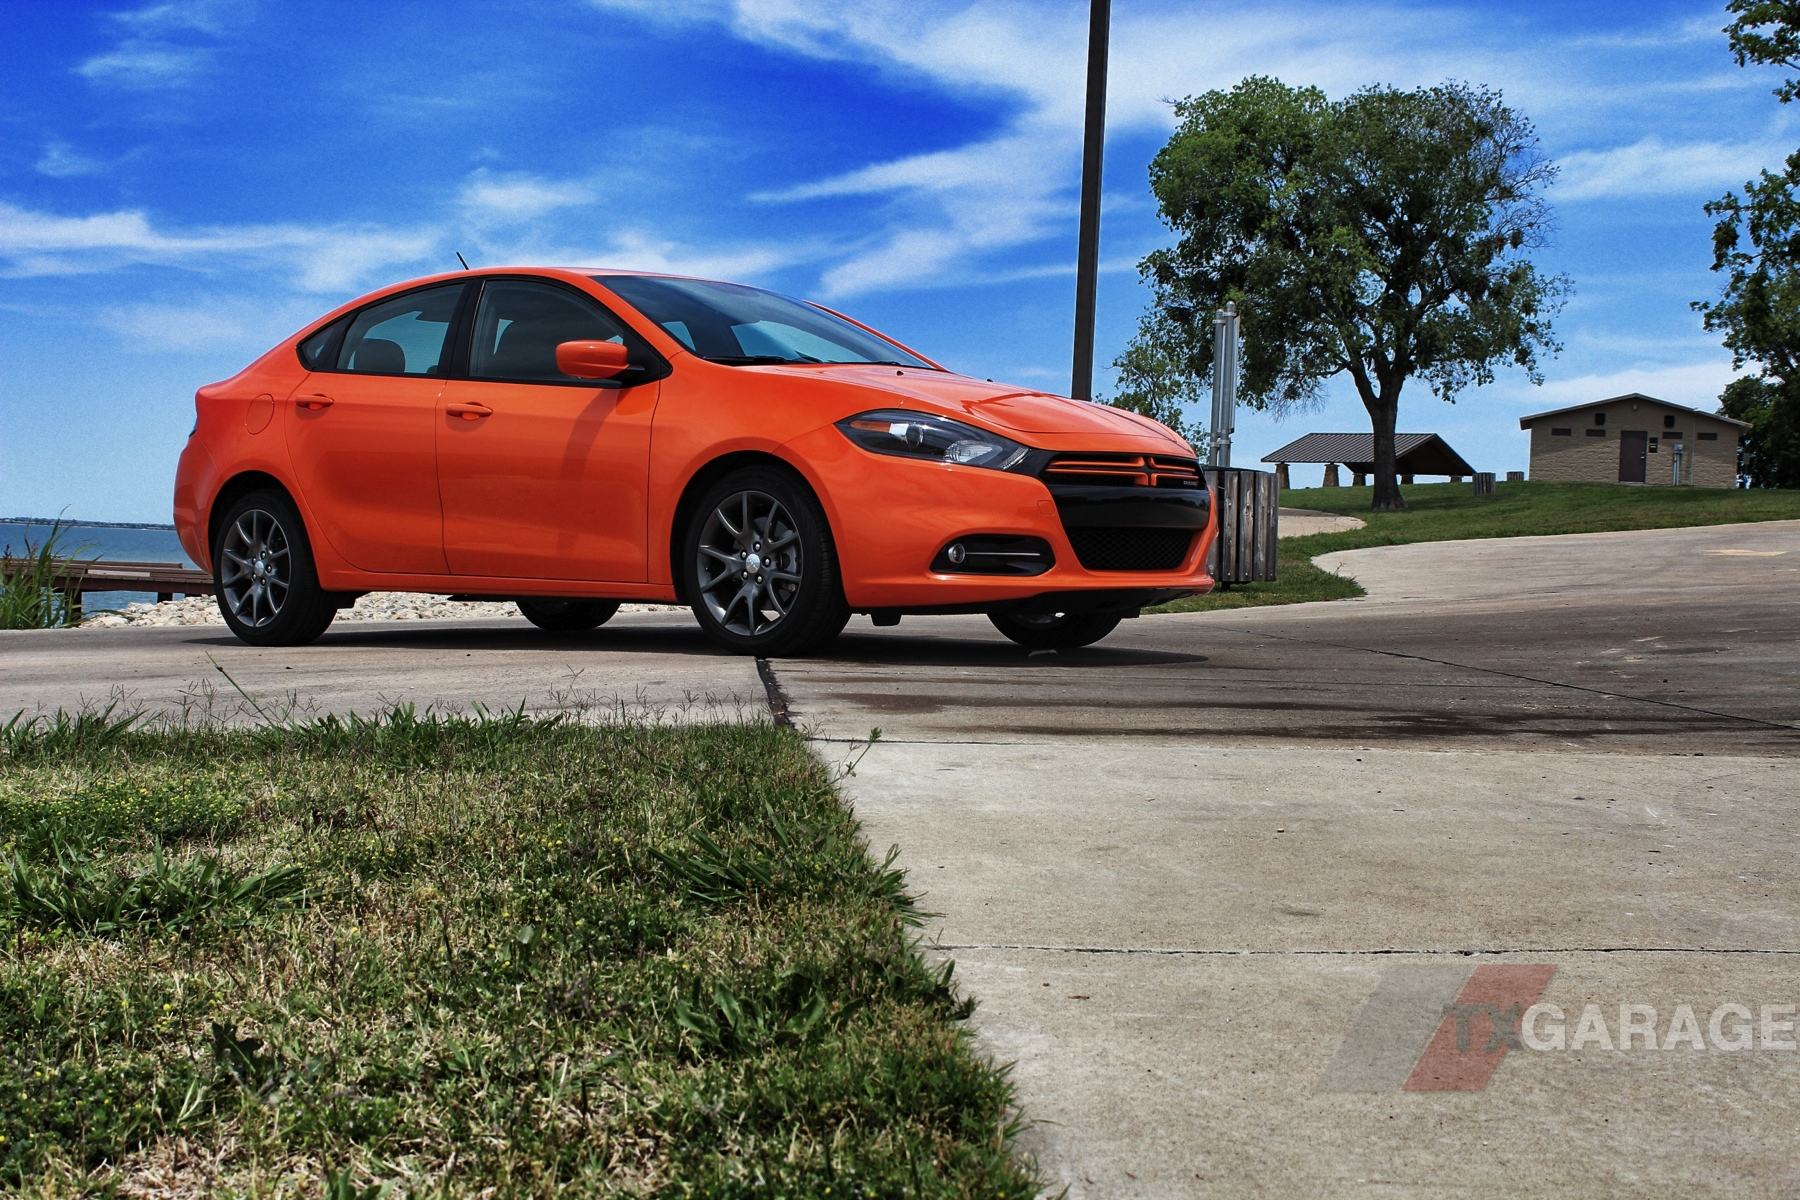 2013 dodge dart rallye 08 txgarage. Cars Review. Best American Auto & Cars Review